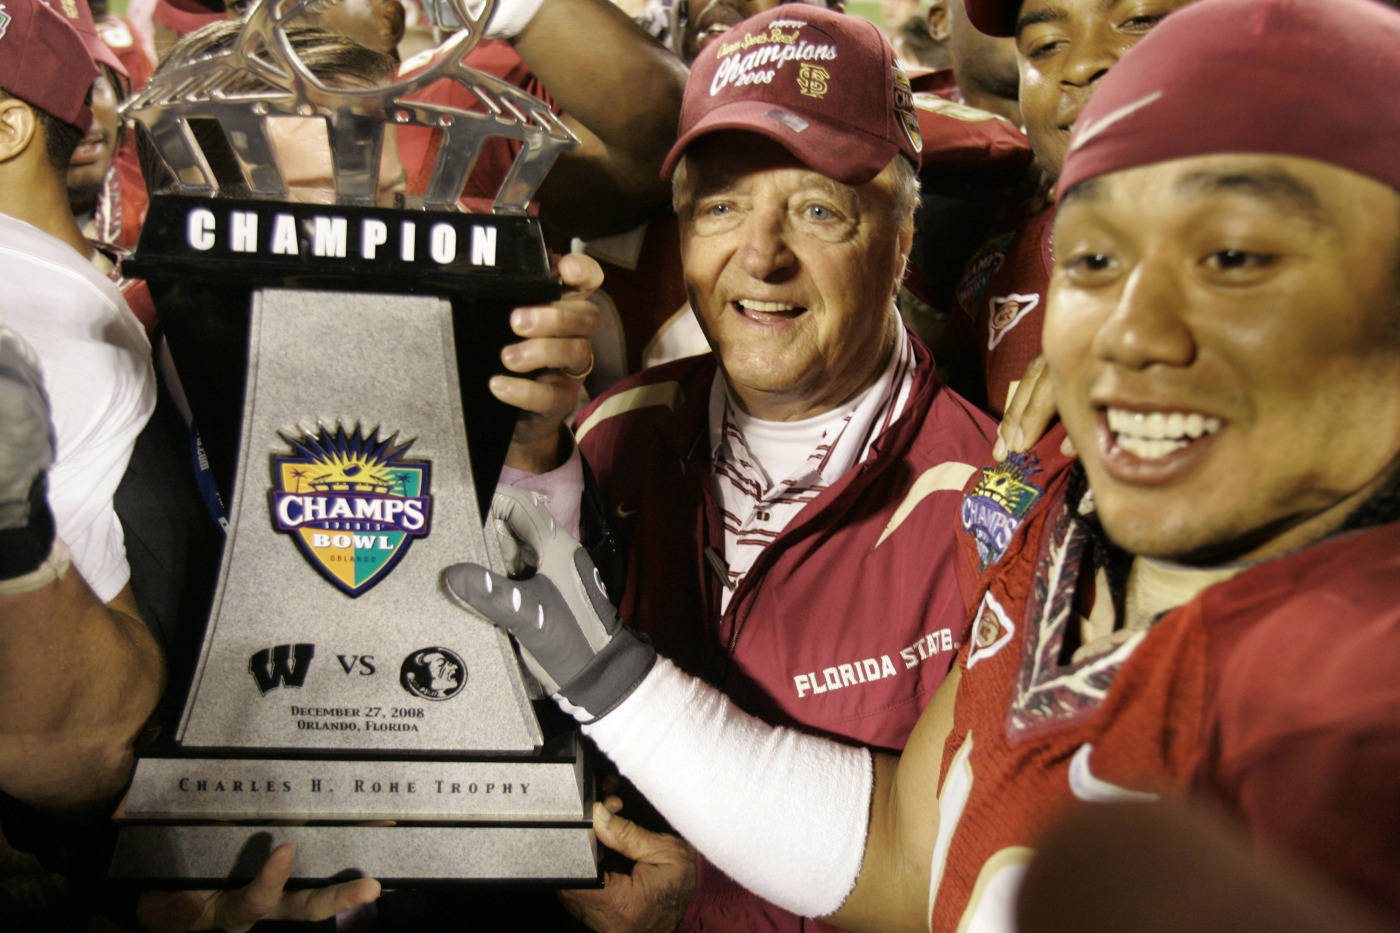 Florida State head coach Bobby Bowden, center, and defensive end Benjamin Lampkin hold the championship trophy after defeating Wisconsin 42-13 in the Champs Sports Bowl. (AP Photo/John Raoux)